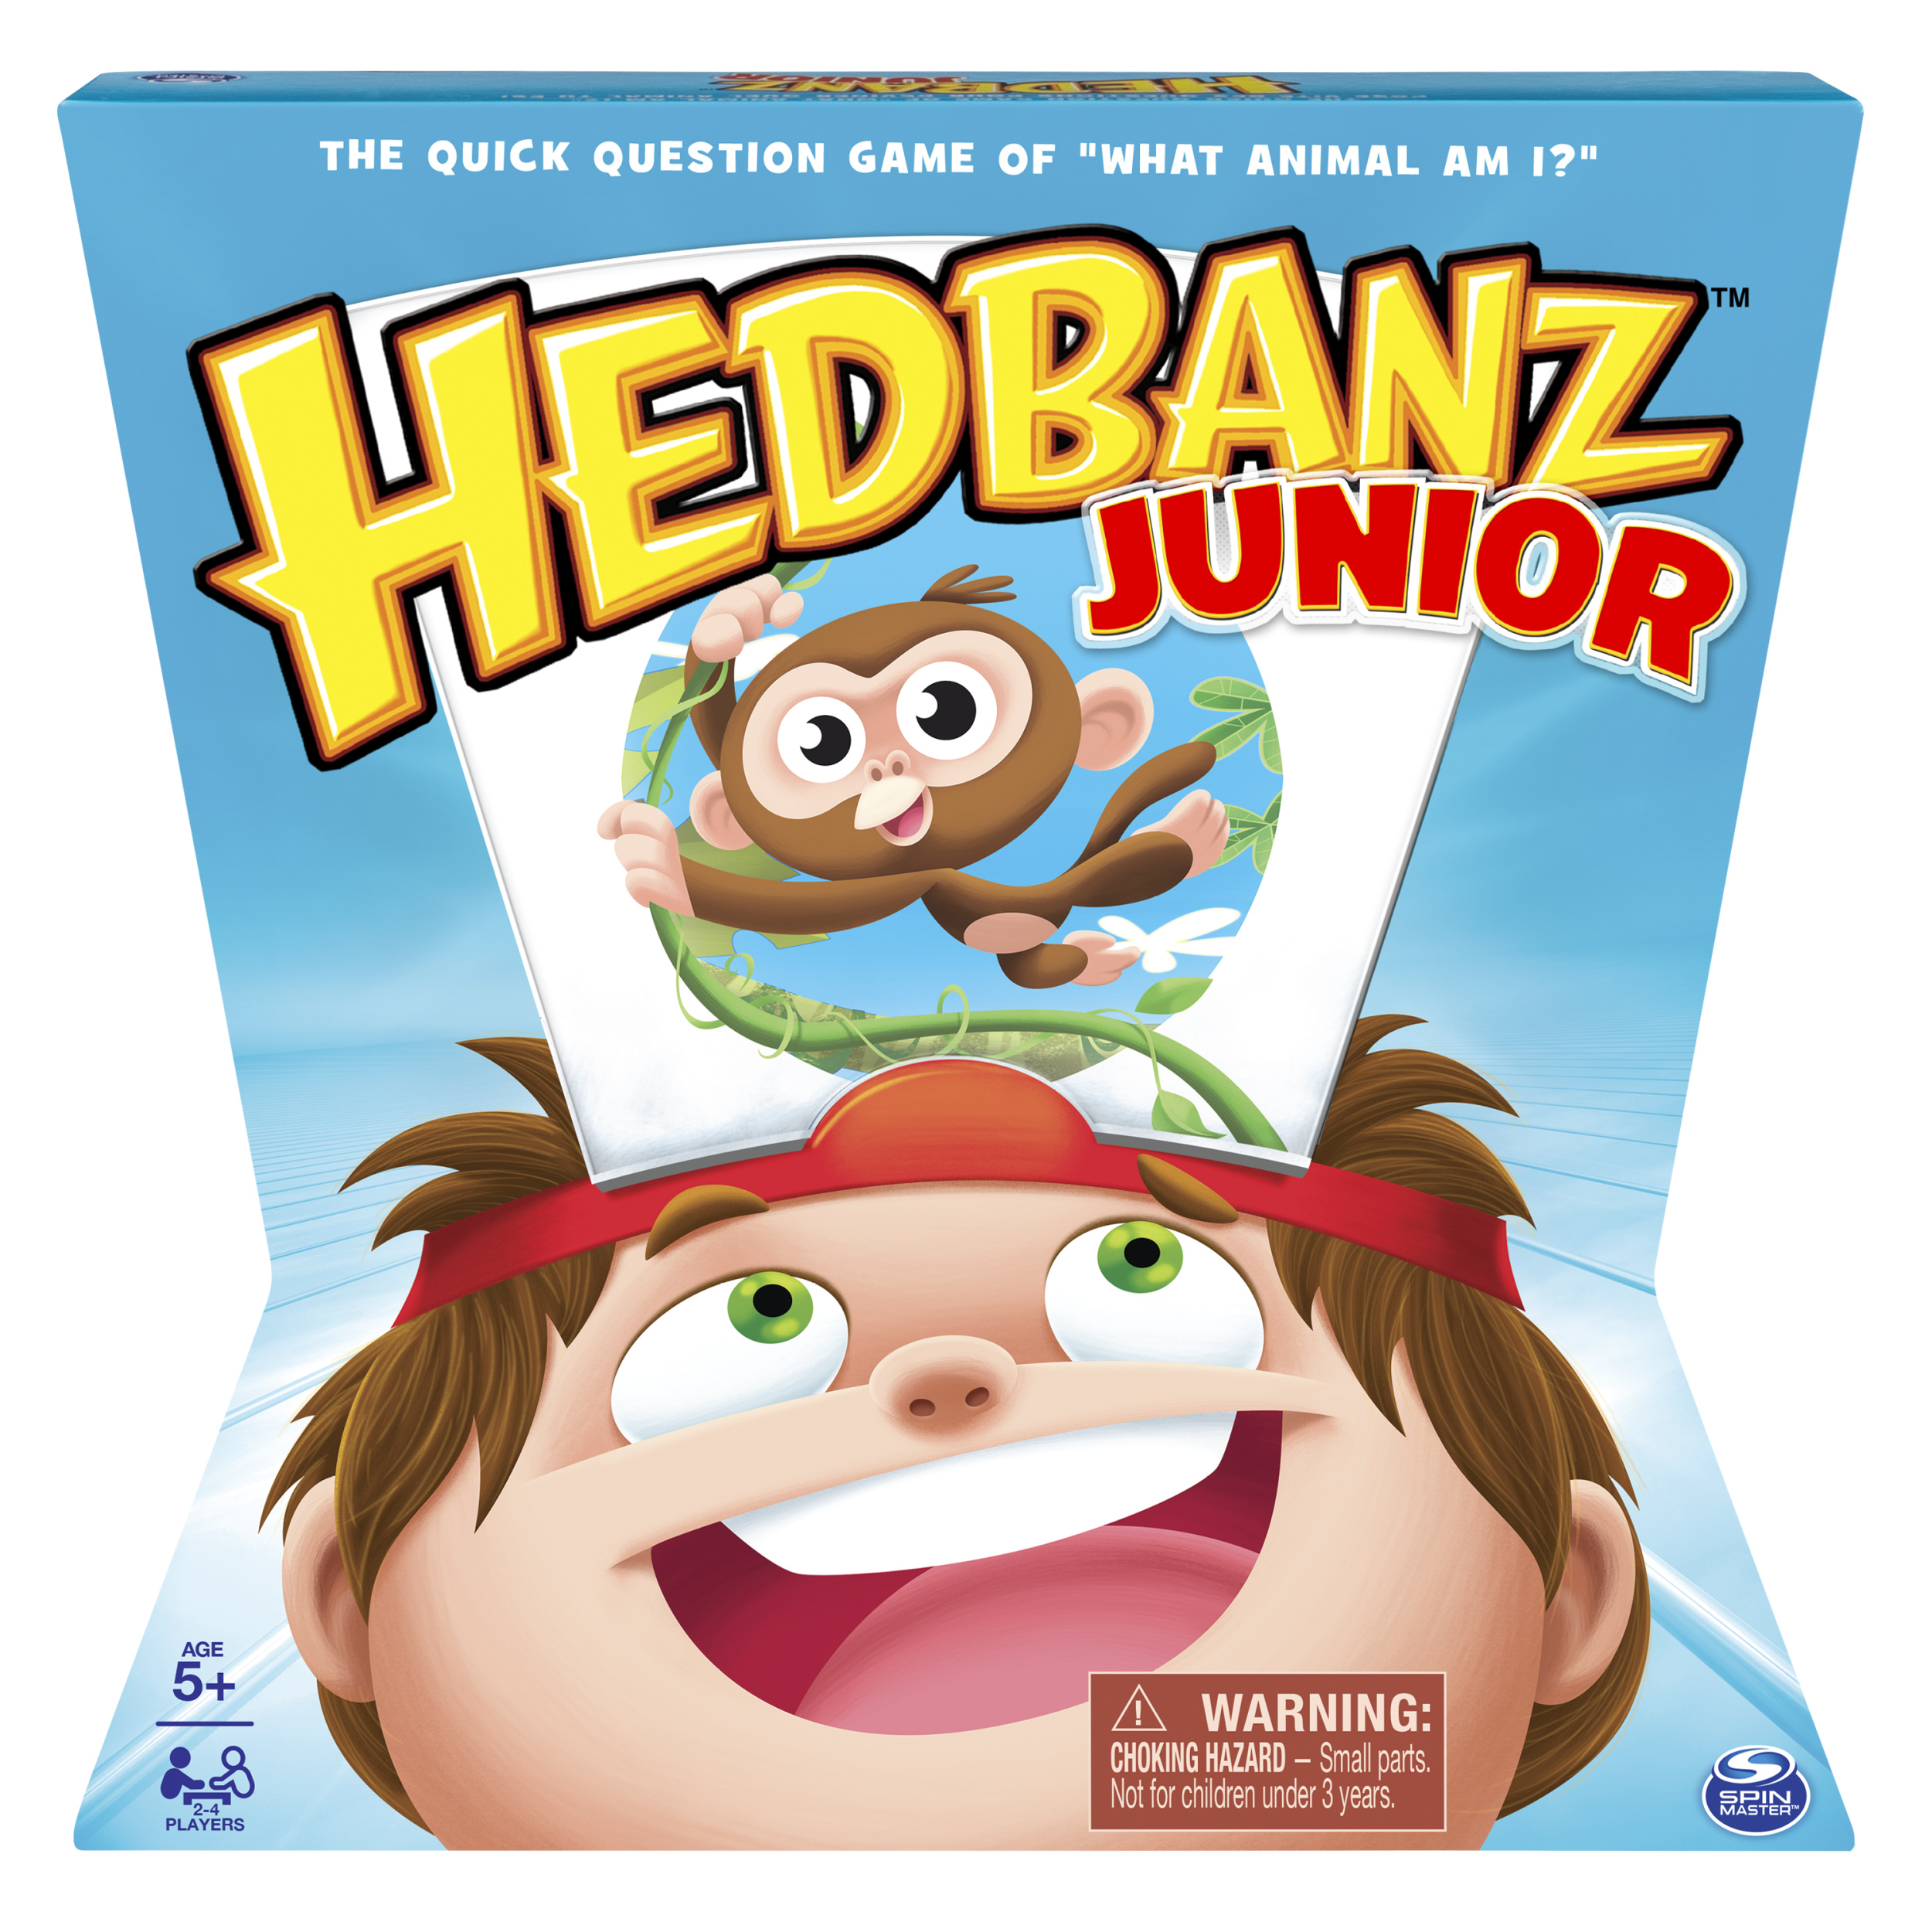 HedBanz - HedBanz Jr. Family Board Game for Kids Age 5 And Up